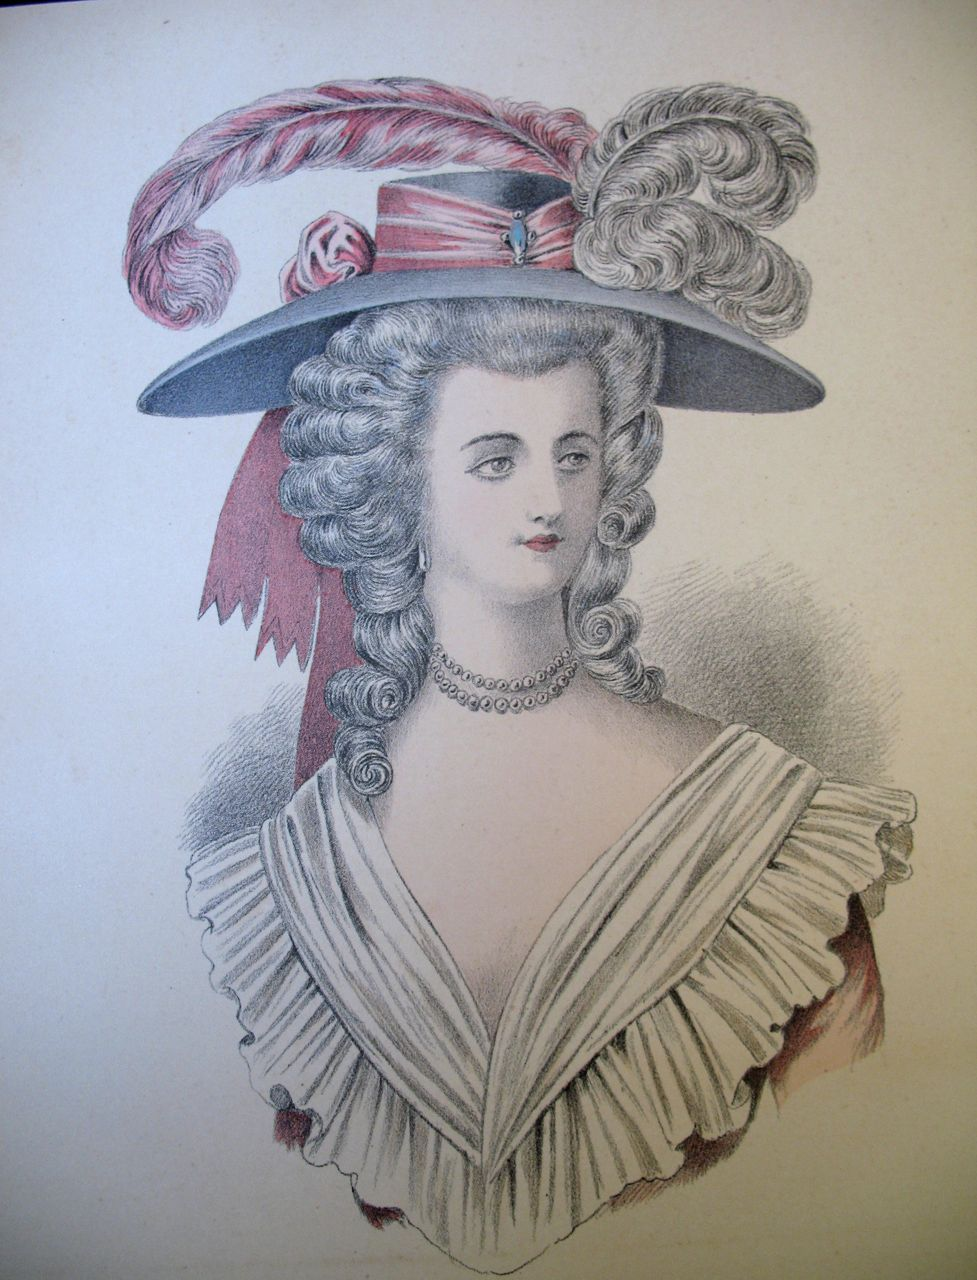 Antique French Print Lithograph Watercolor 19th C Century Louis XVI Marie Antoinette Portrait MAGNIFICENT